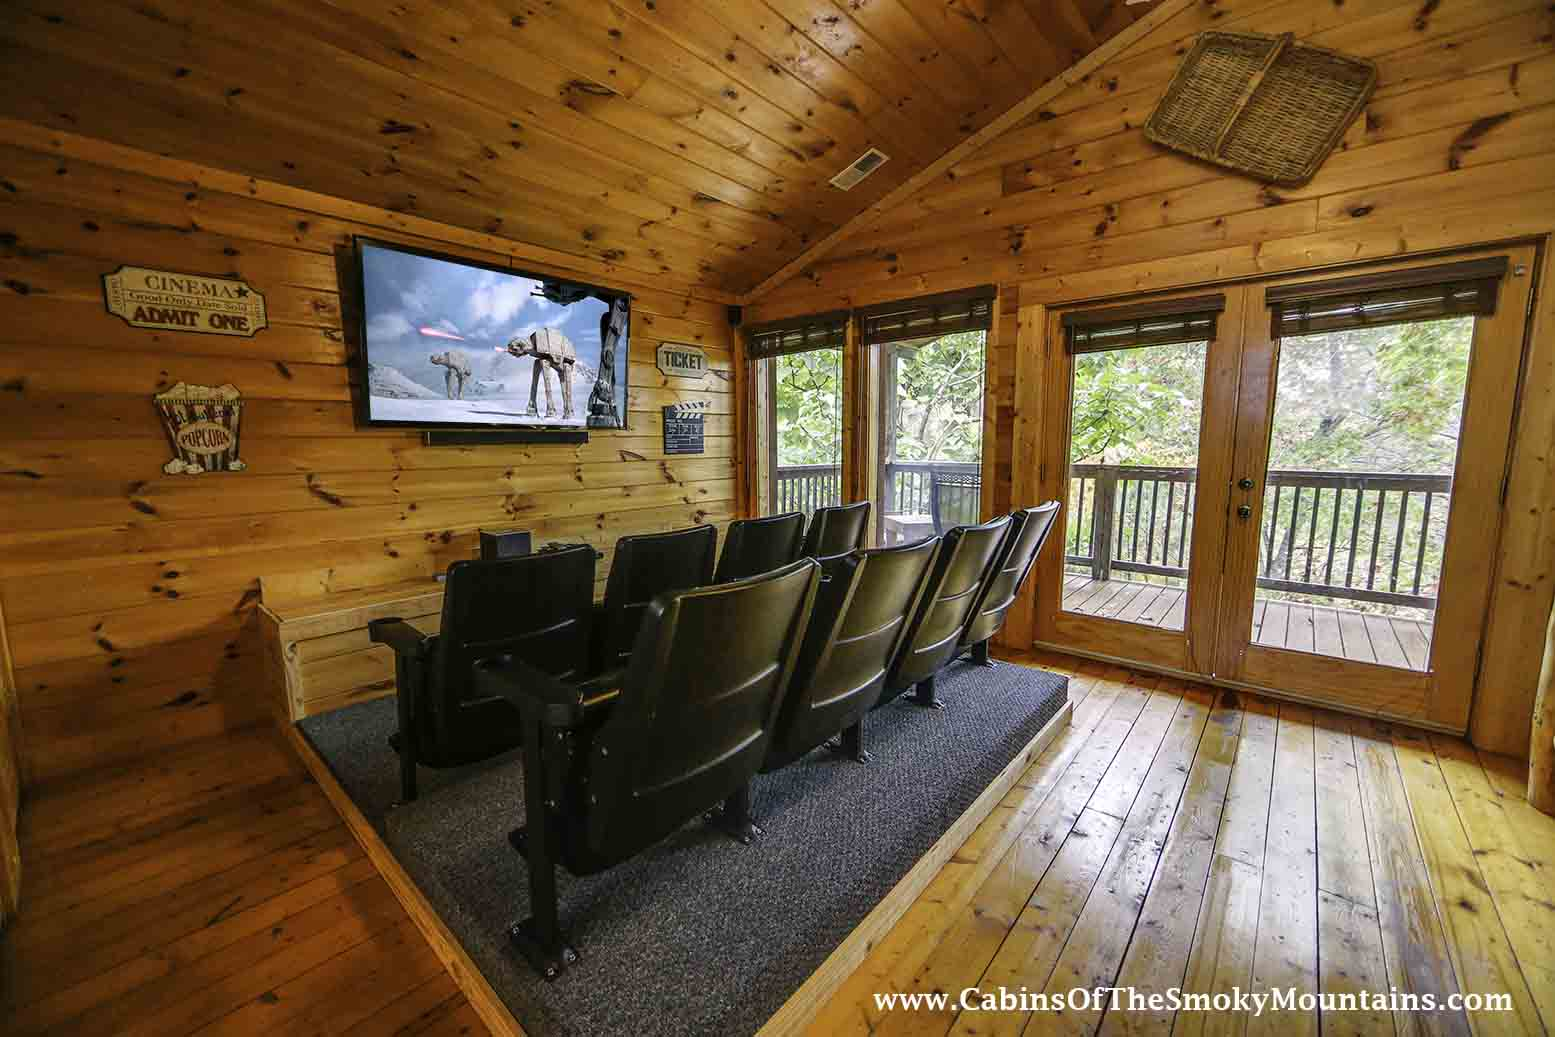 cabins rentals forge gatlinburg a cove the alike pin among and visitors favorite cabin in is pigeon locals cades